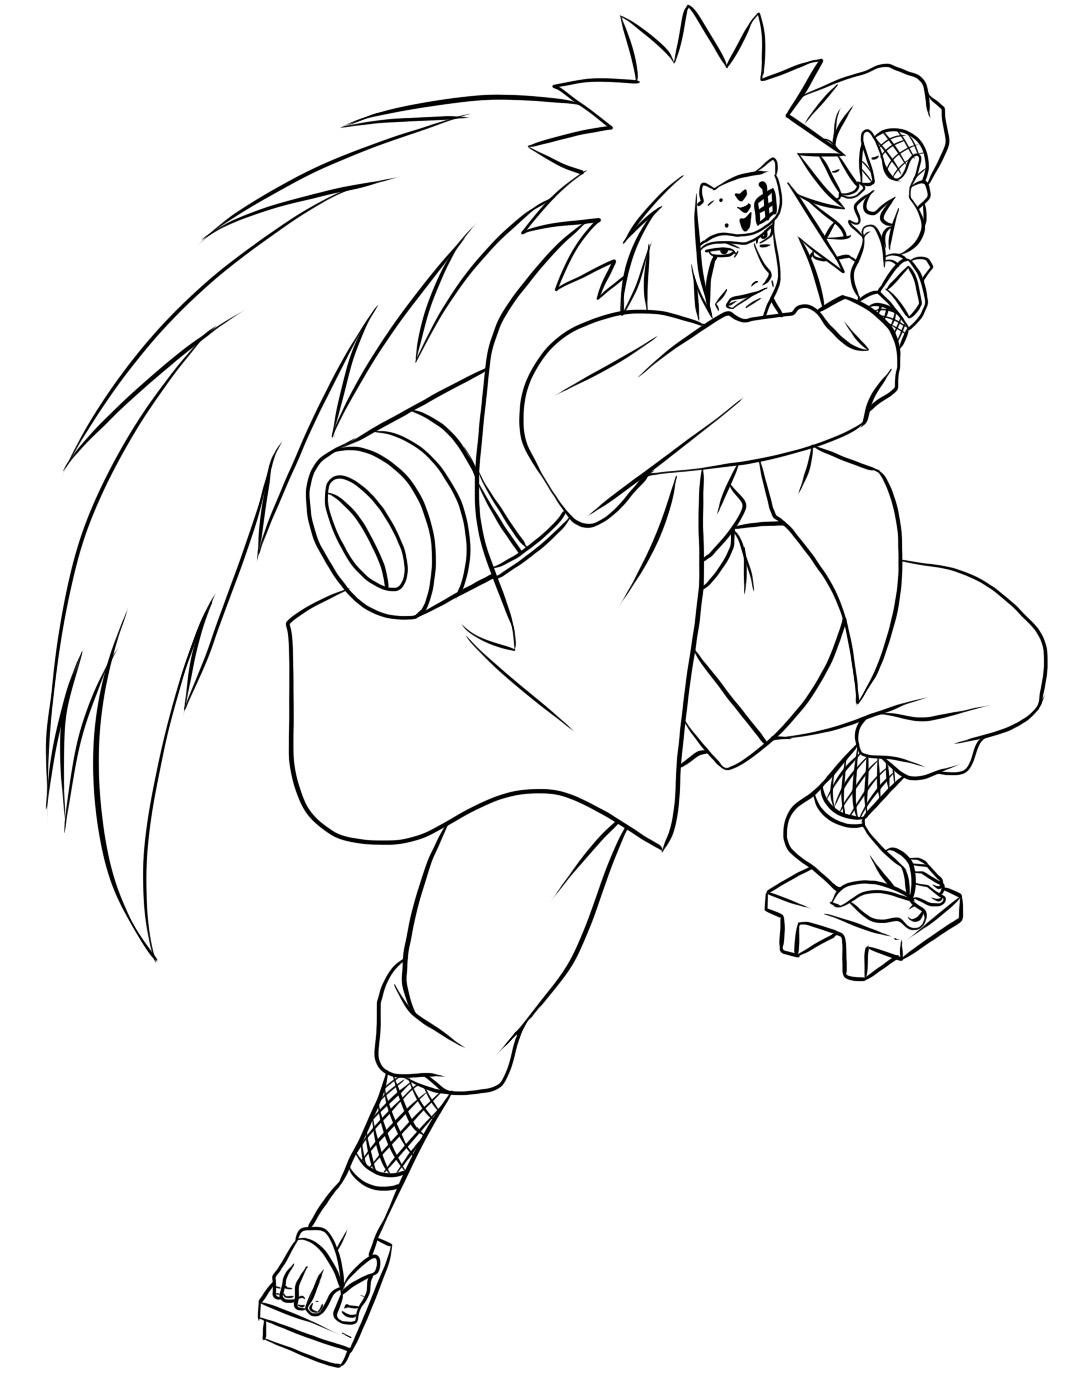 coloring pages of naruto - photo#13